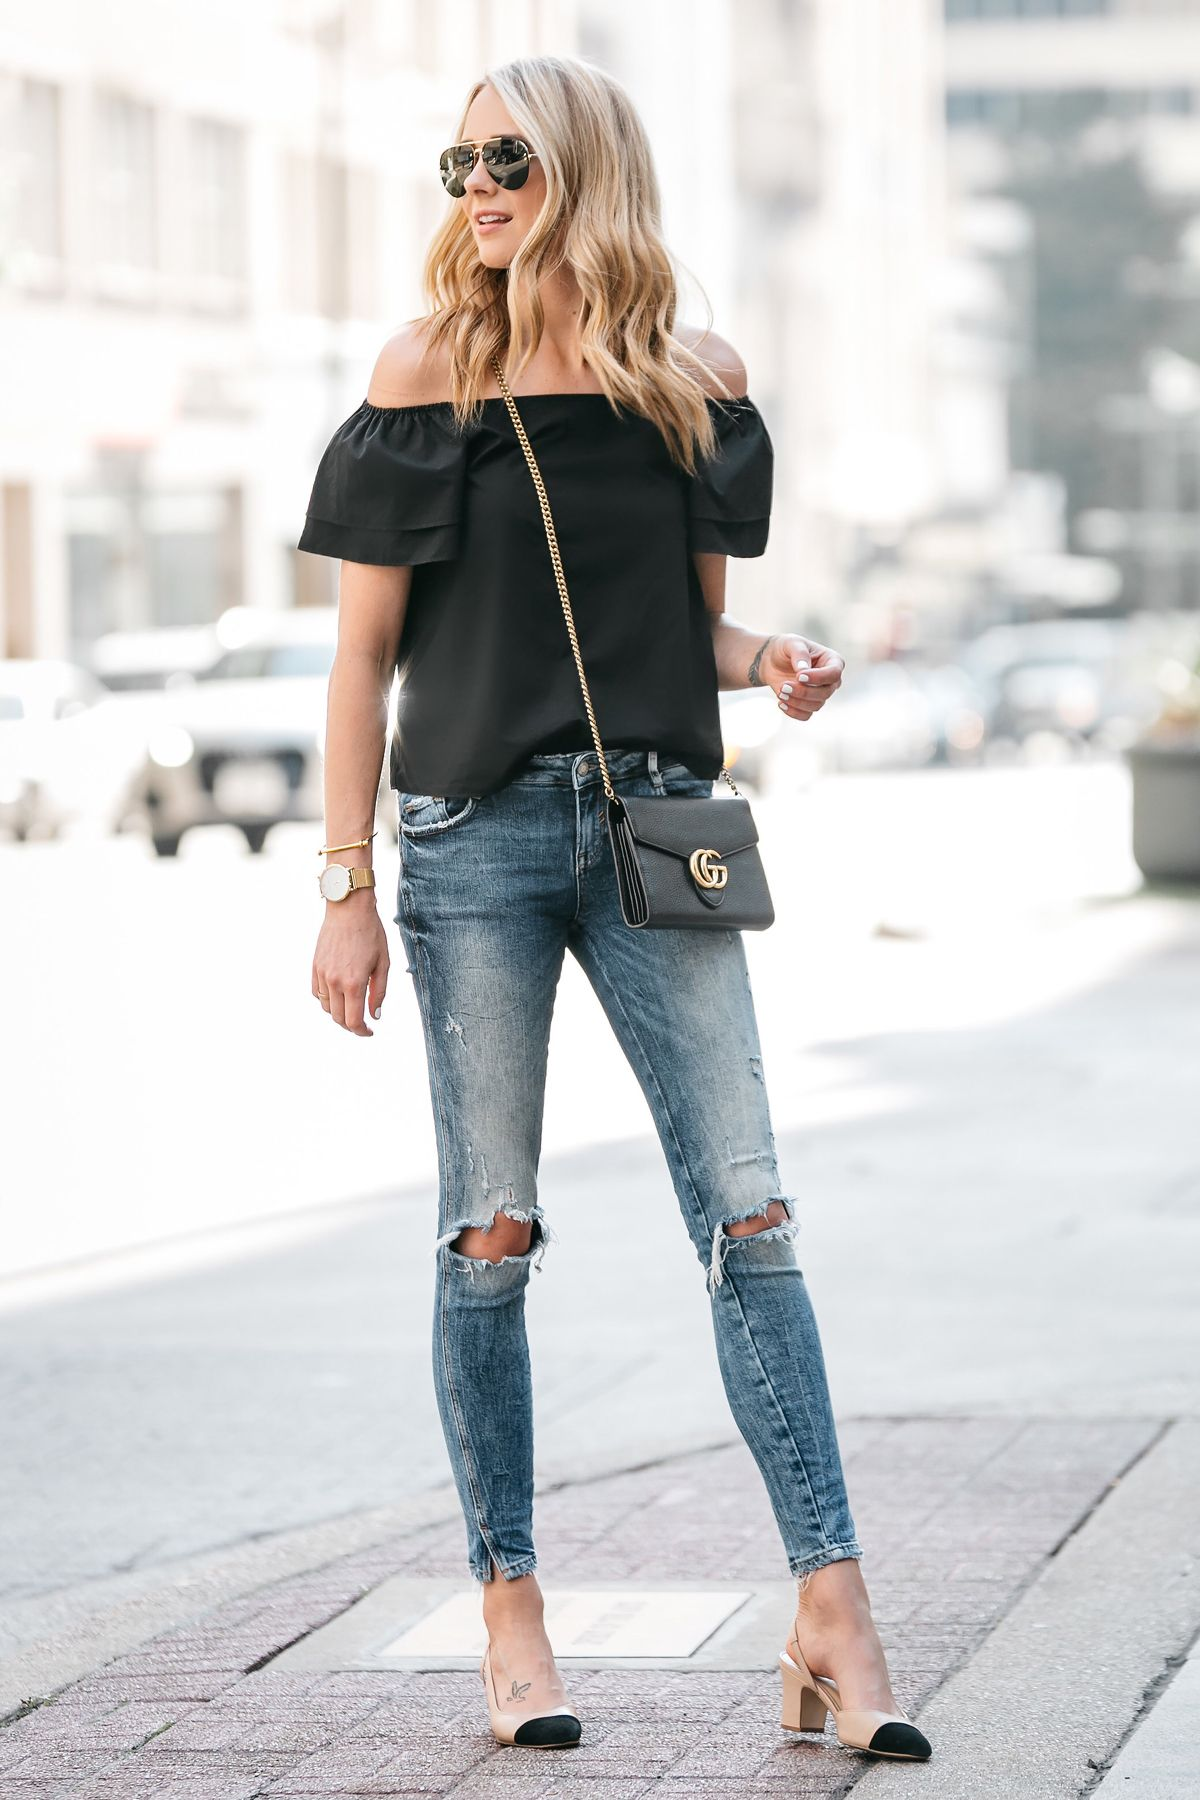 Fashion Jackson, Dallas Blogger, Fashion Blogger, Street Style, Black Short  Sleeve Off-the-shoulder top, Zara Denim Ripped Skinny Jeans, Gucci Marmont  ... 945f628d04